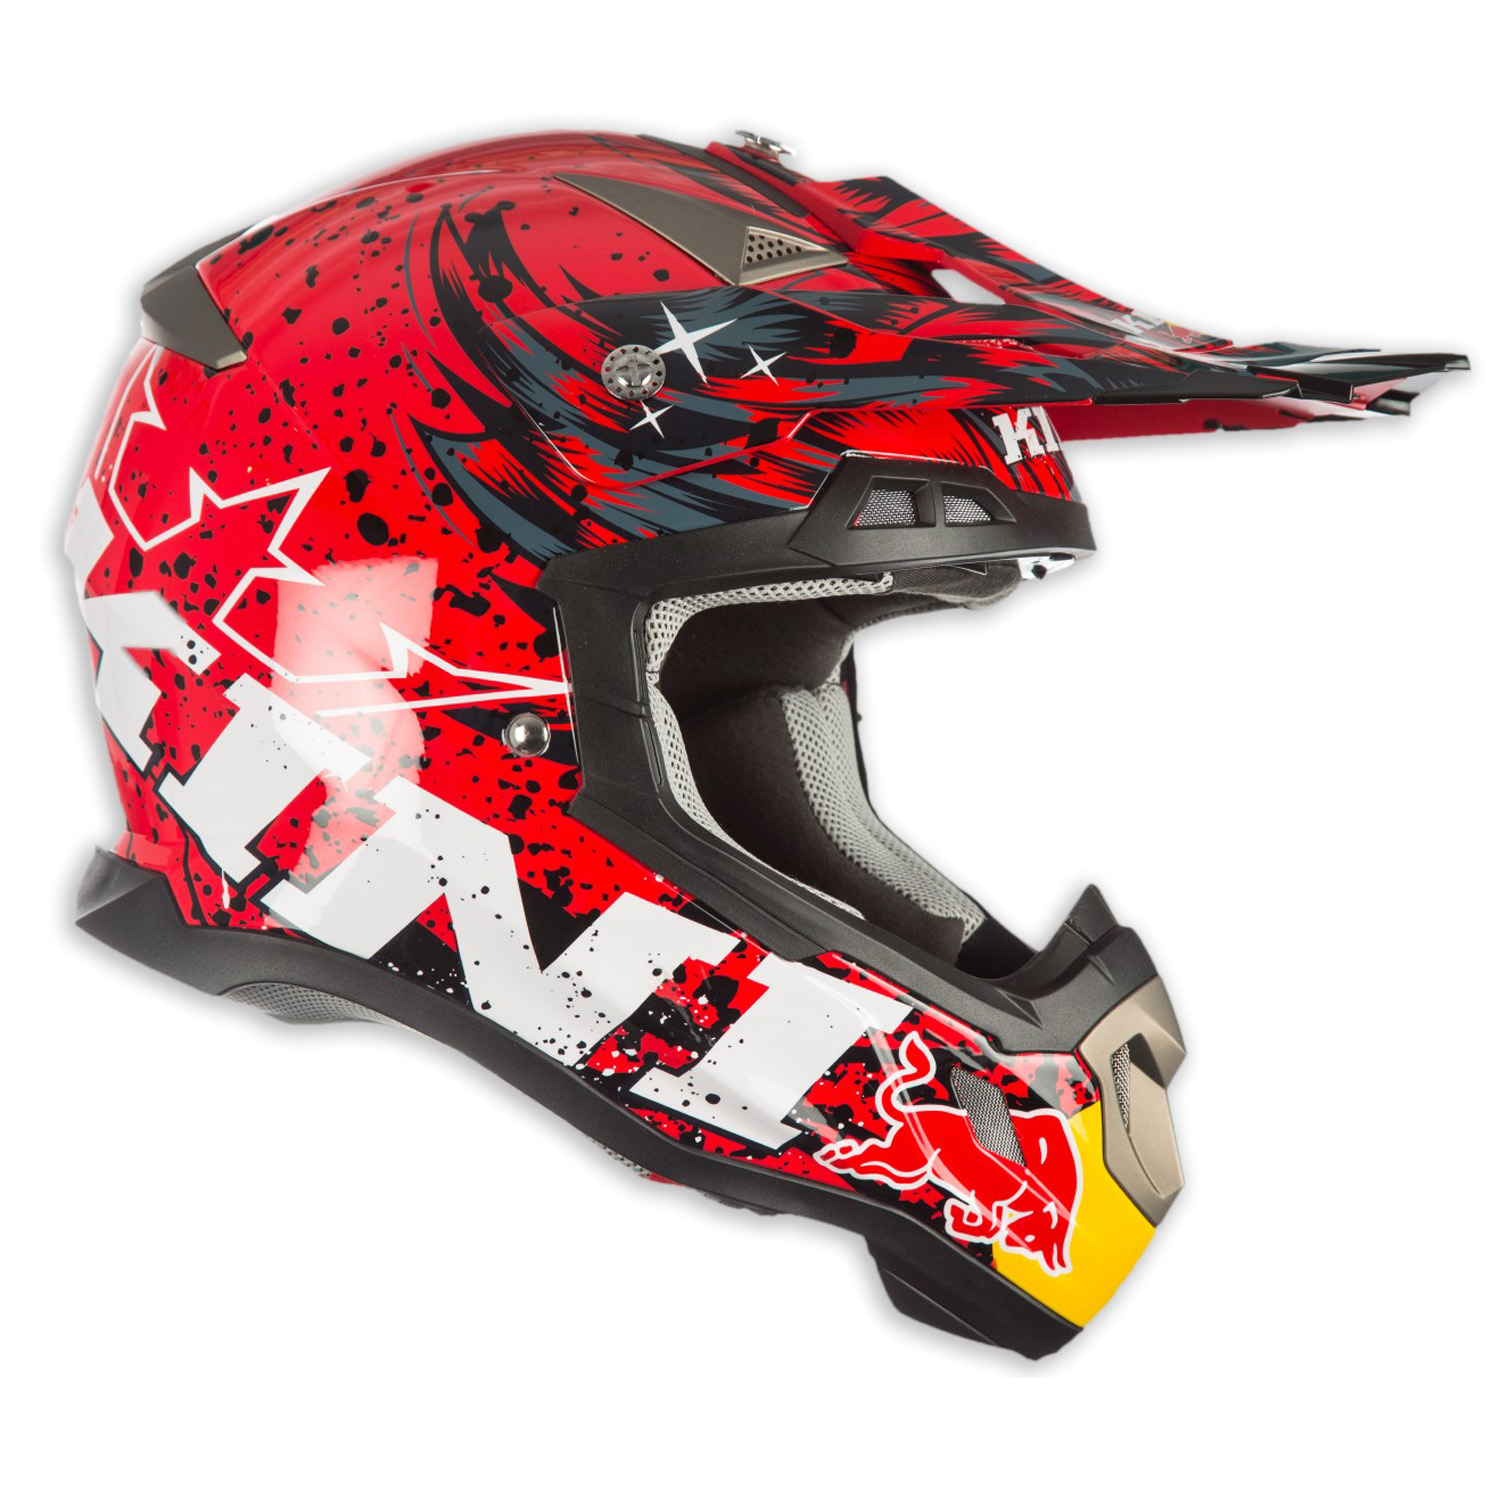 kini red bull helm gr m mx motocross enduro quad. Black Bedroom Furniture Sets. Home Design Ideas